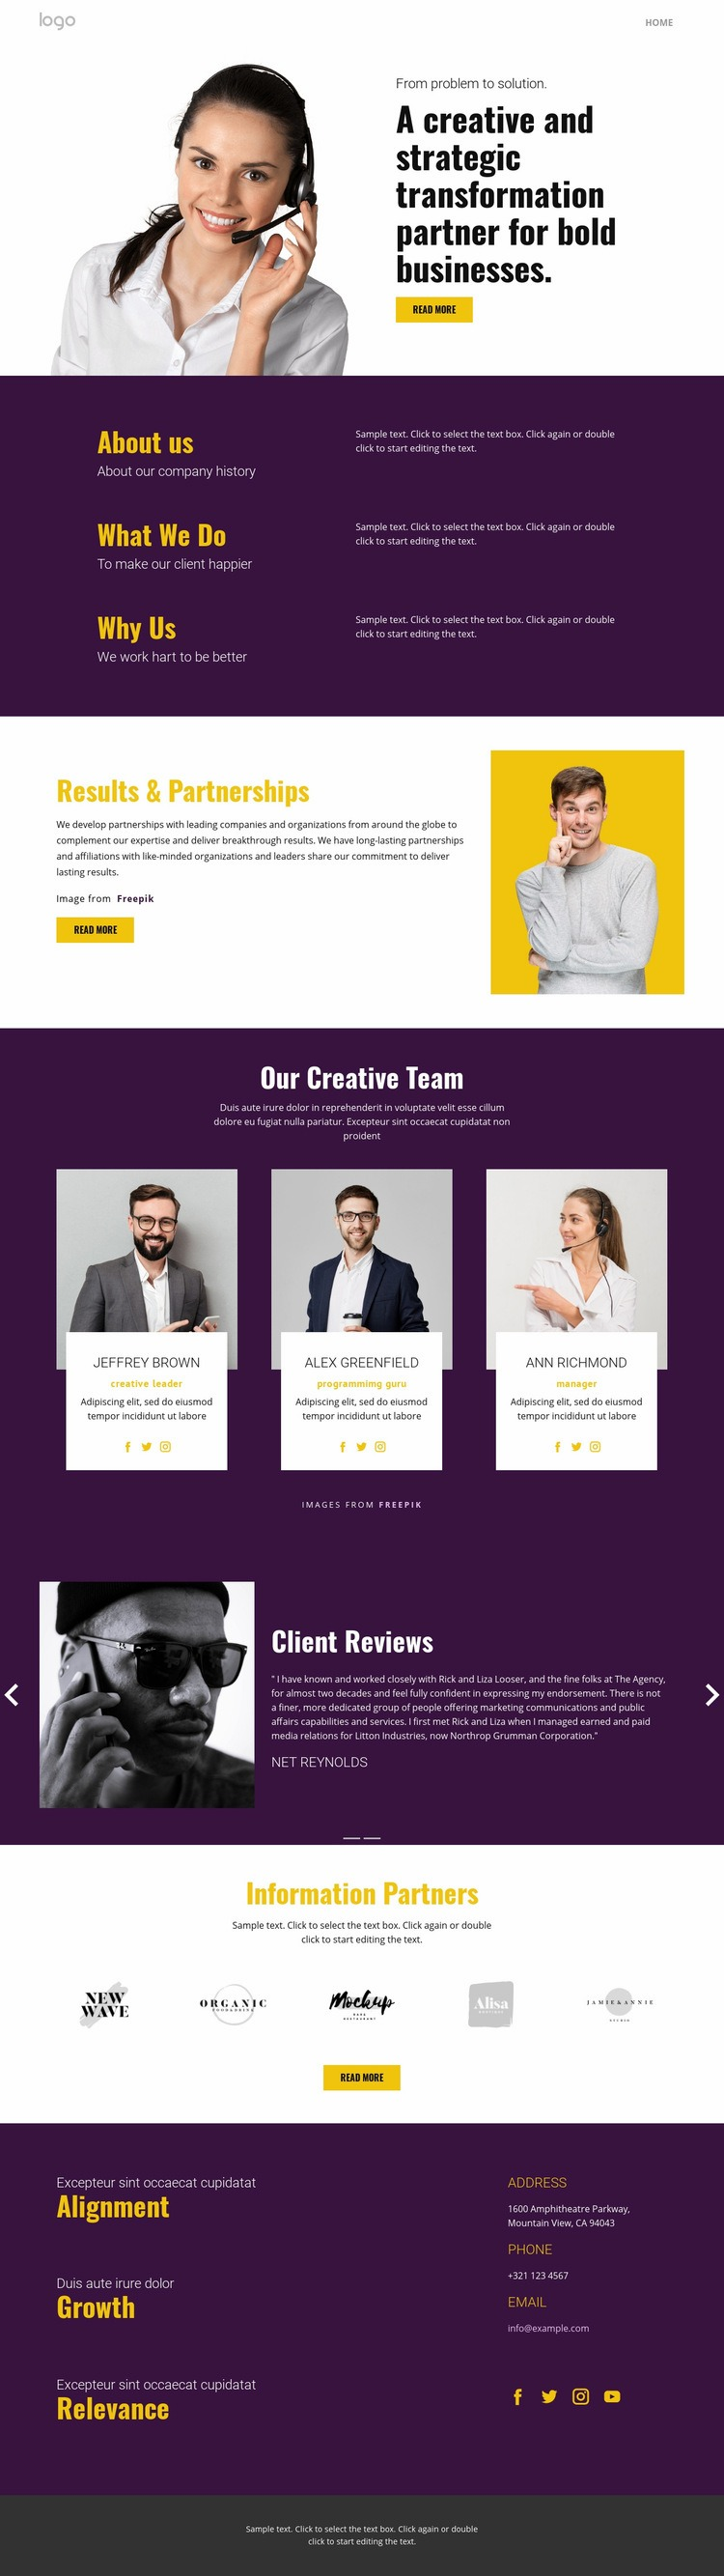 Creative strategy in business Html Code Example